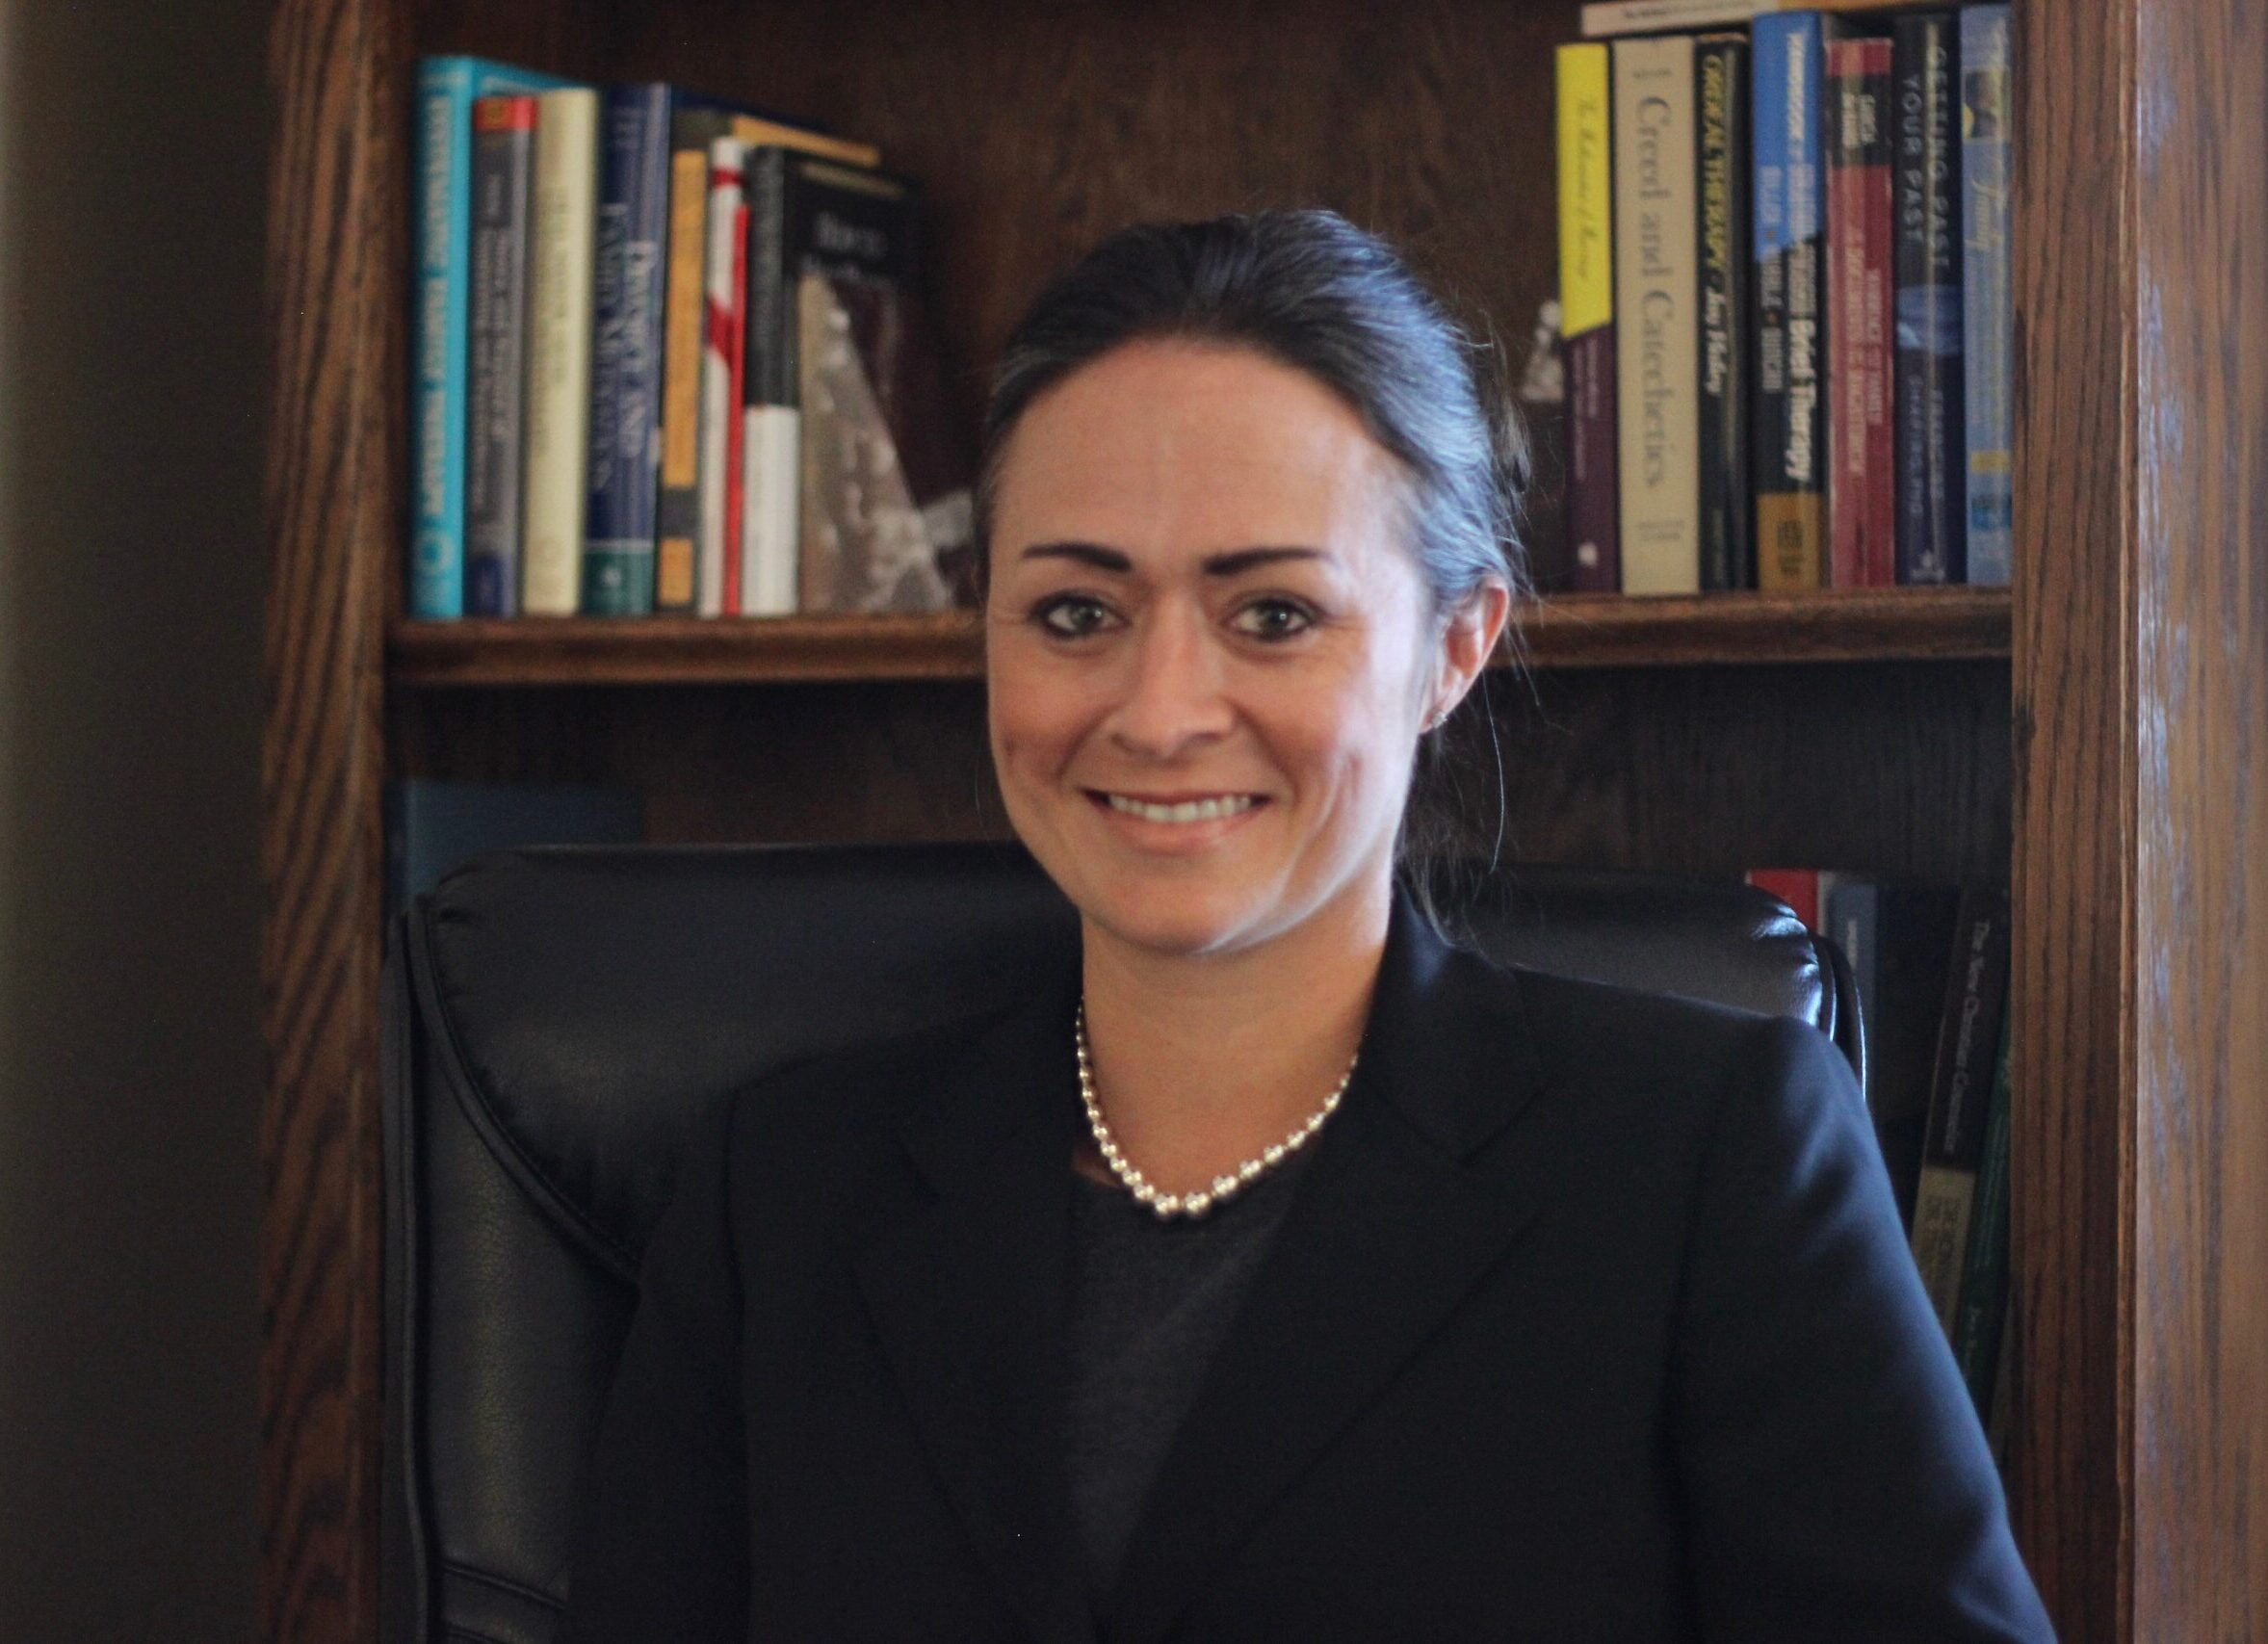 Dr. Whitni Buckles, PhD, LMHC, Licensed Counselor